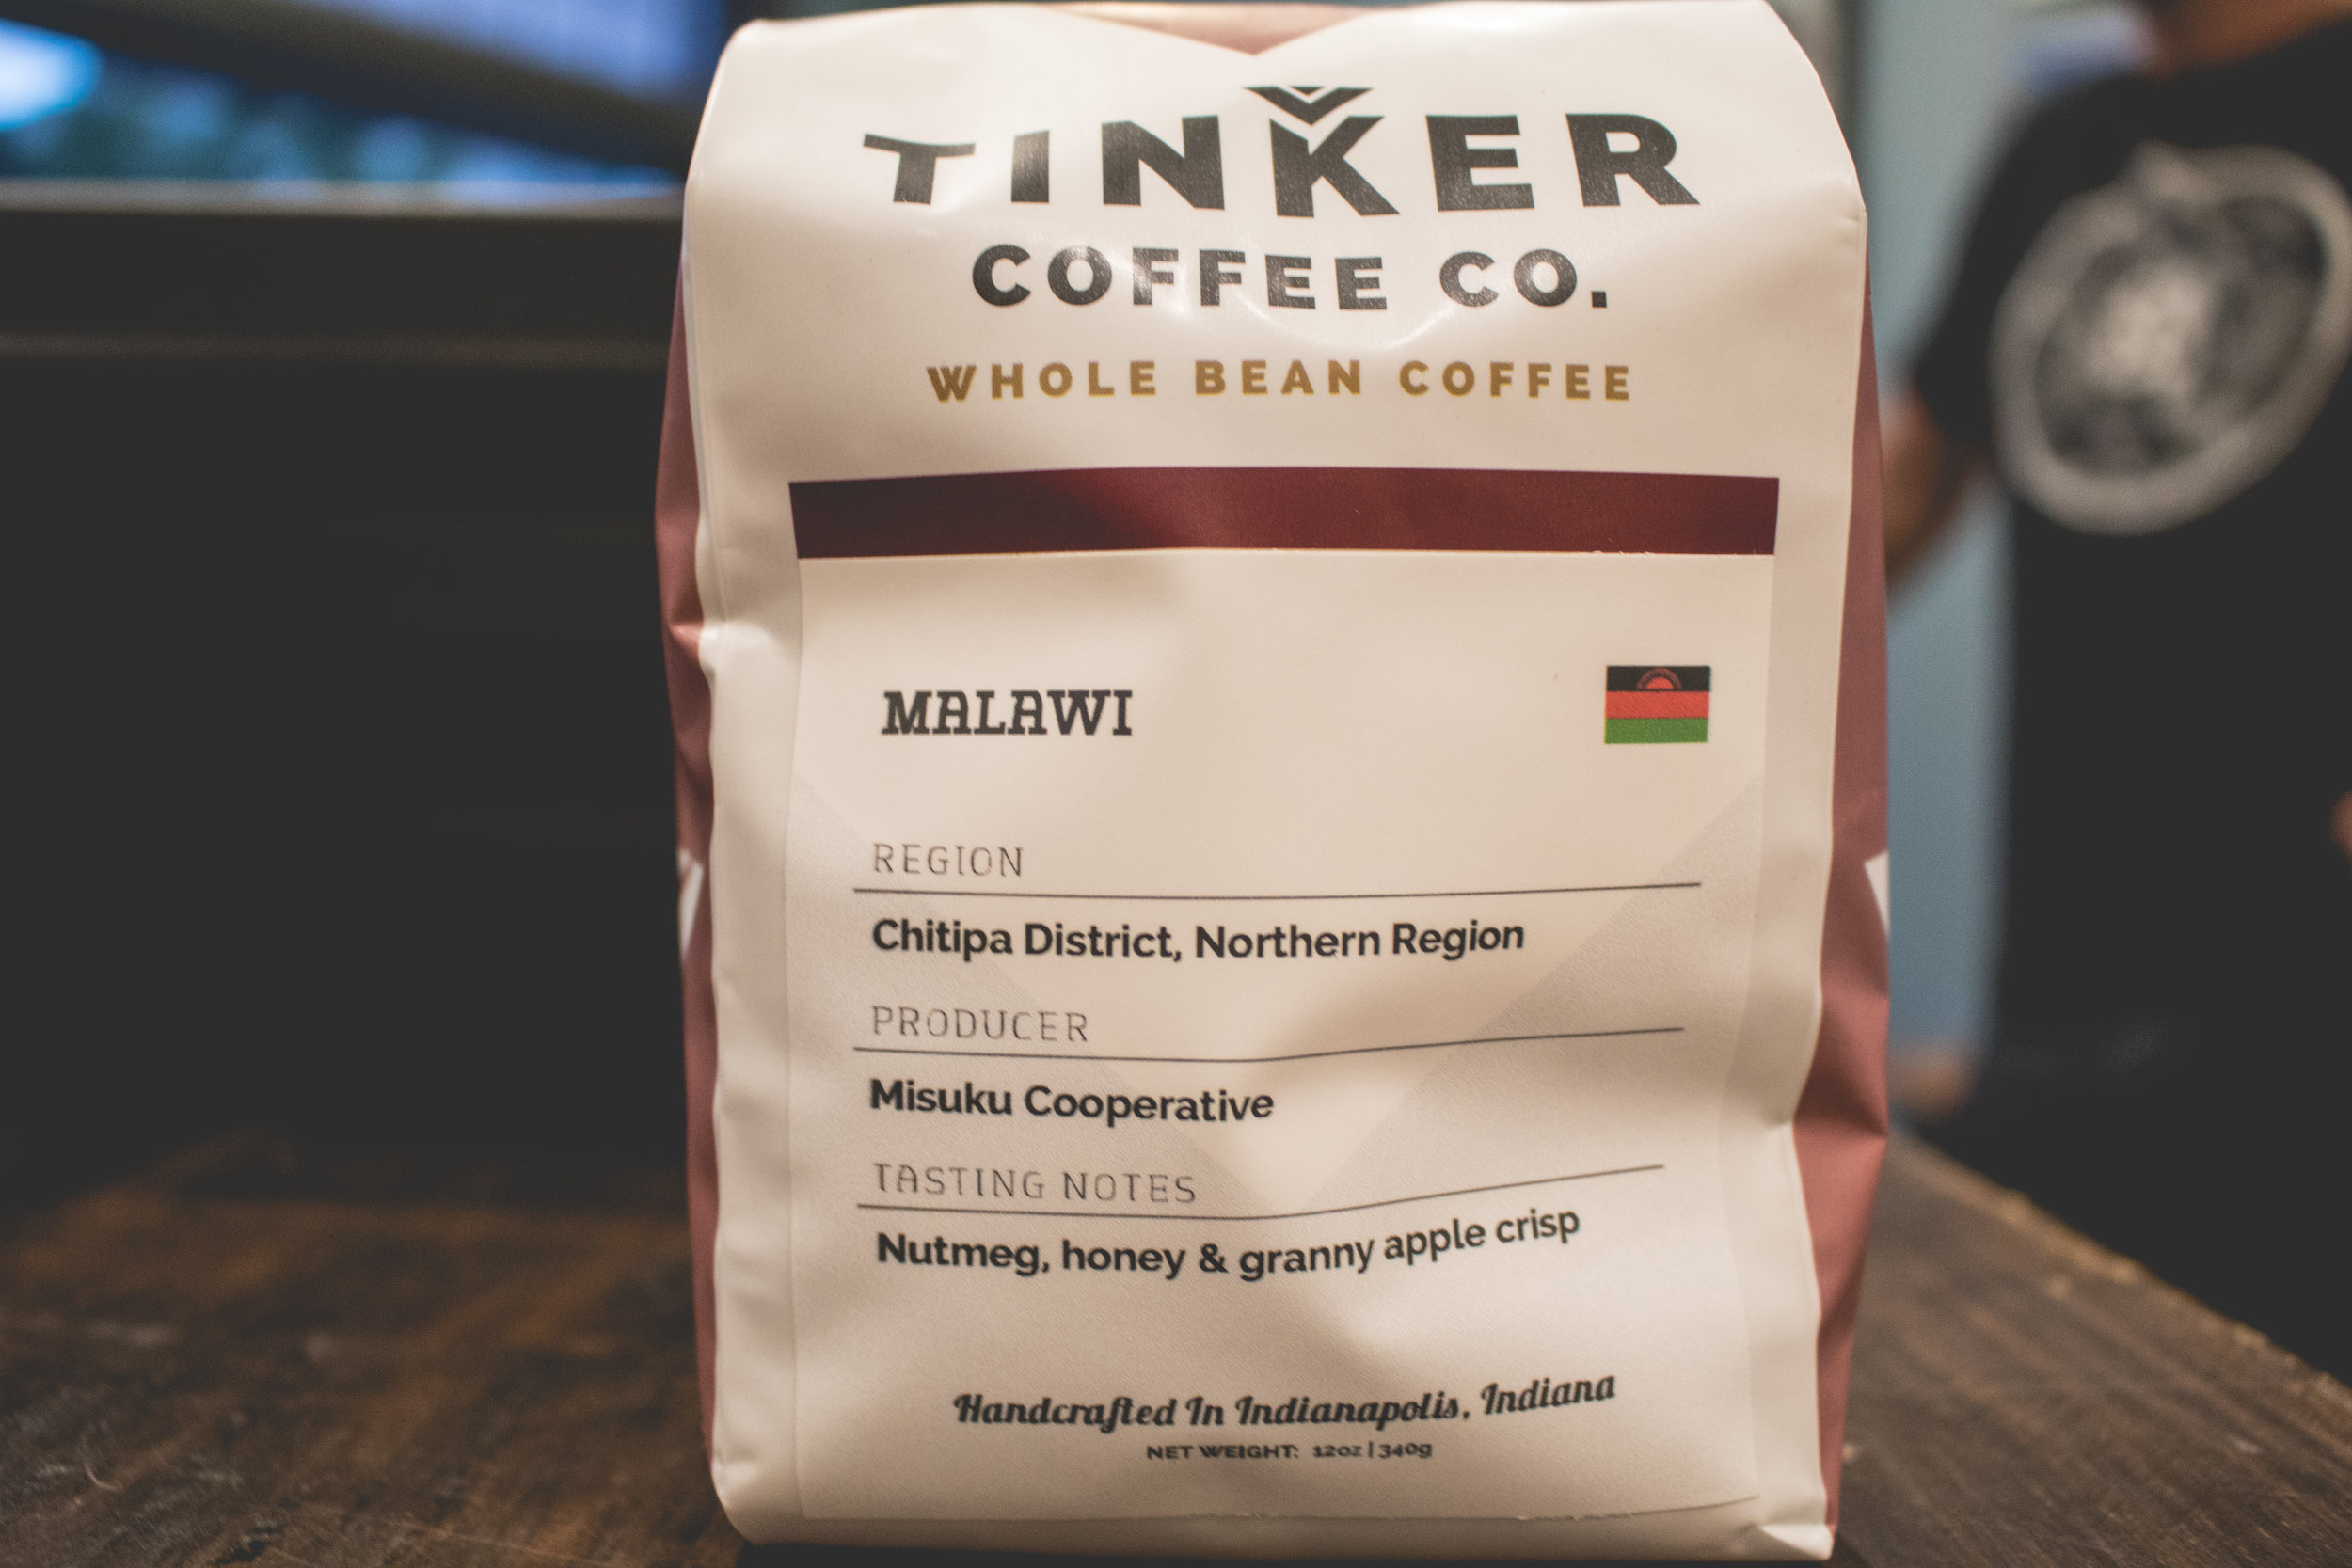 Episode 16: Steve Hall & Jeff Johnson, Tinker Coffee Co. -